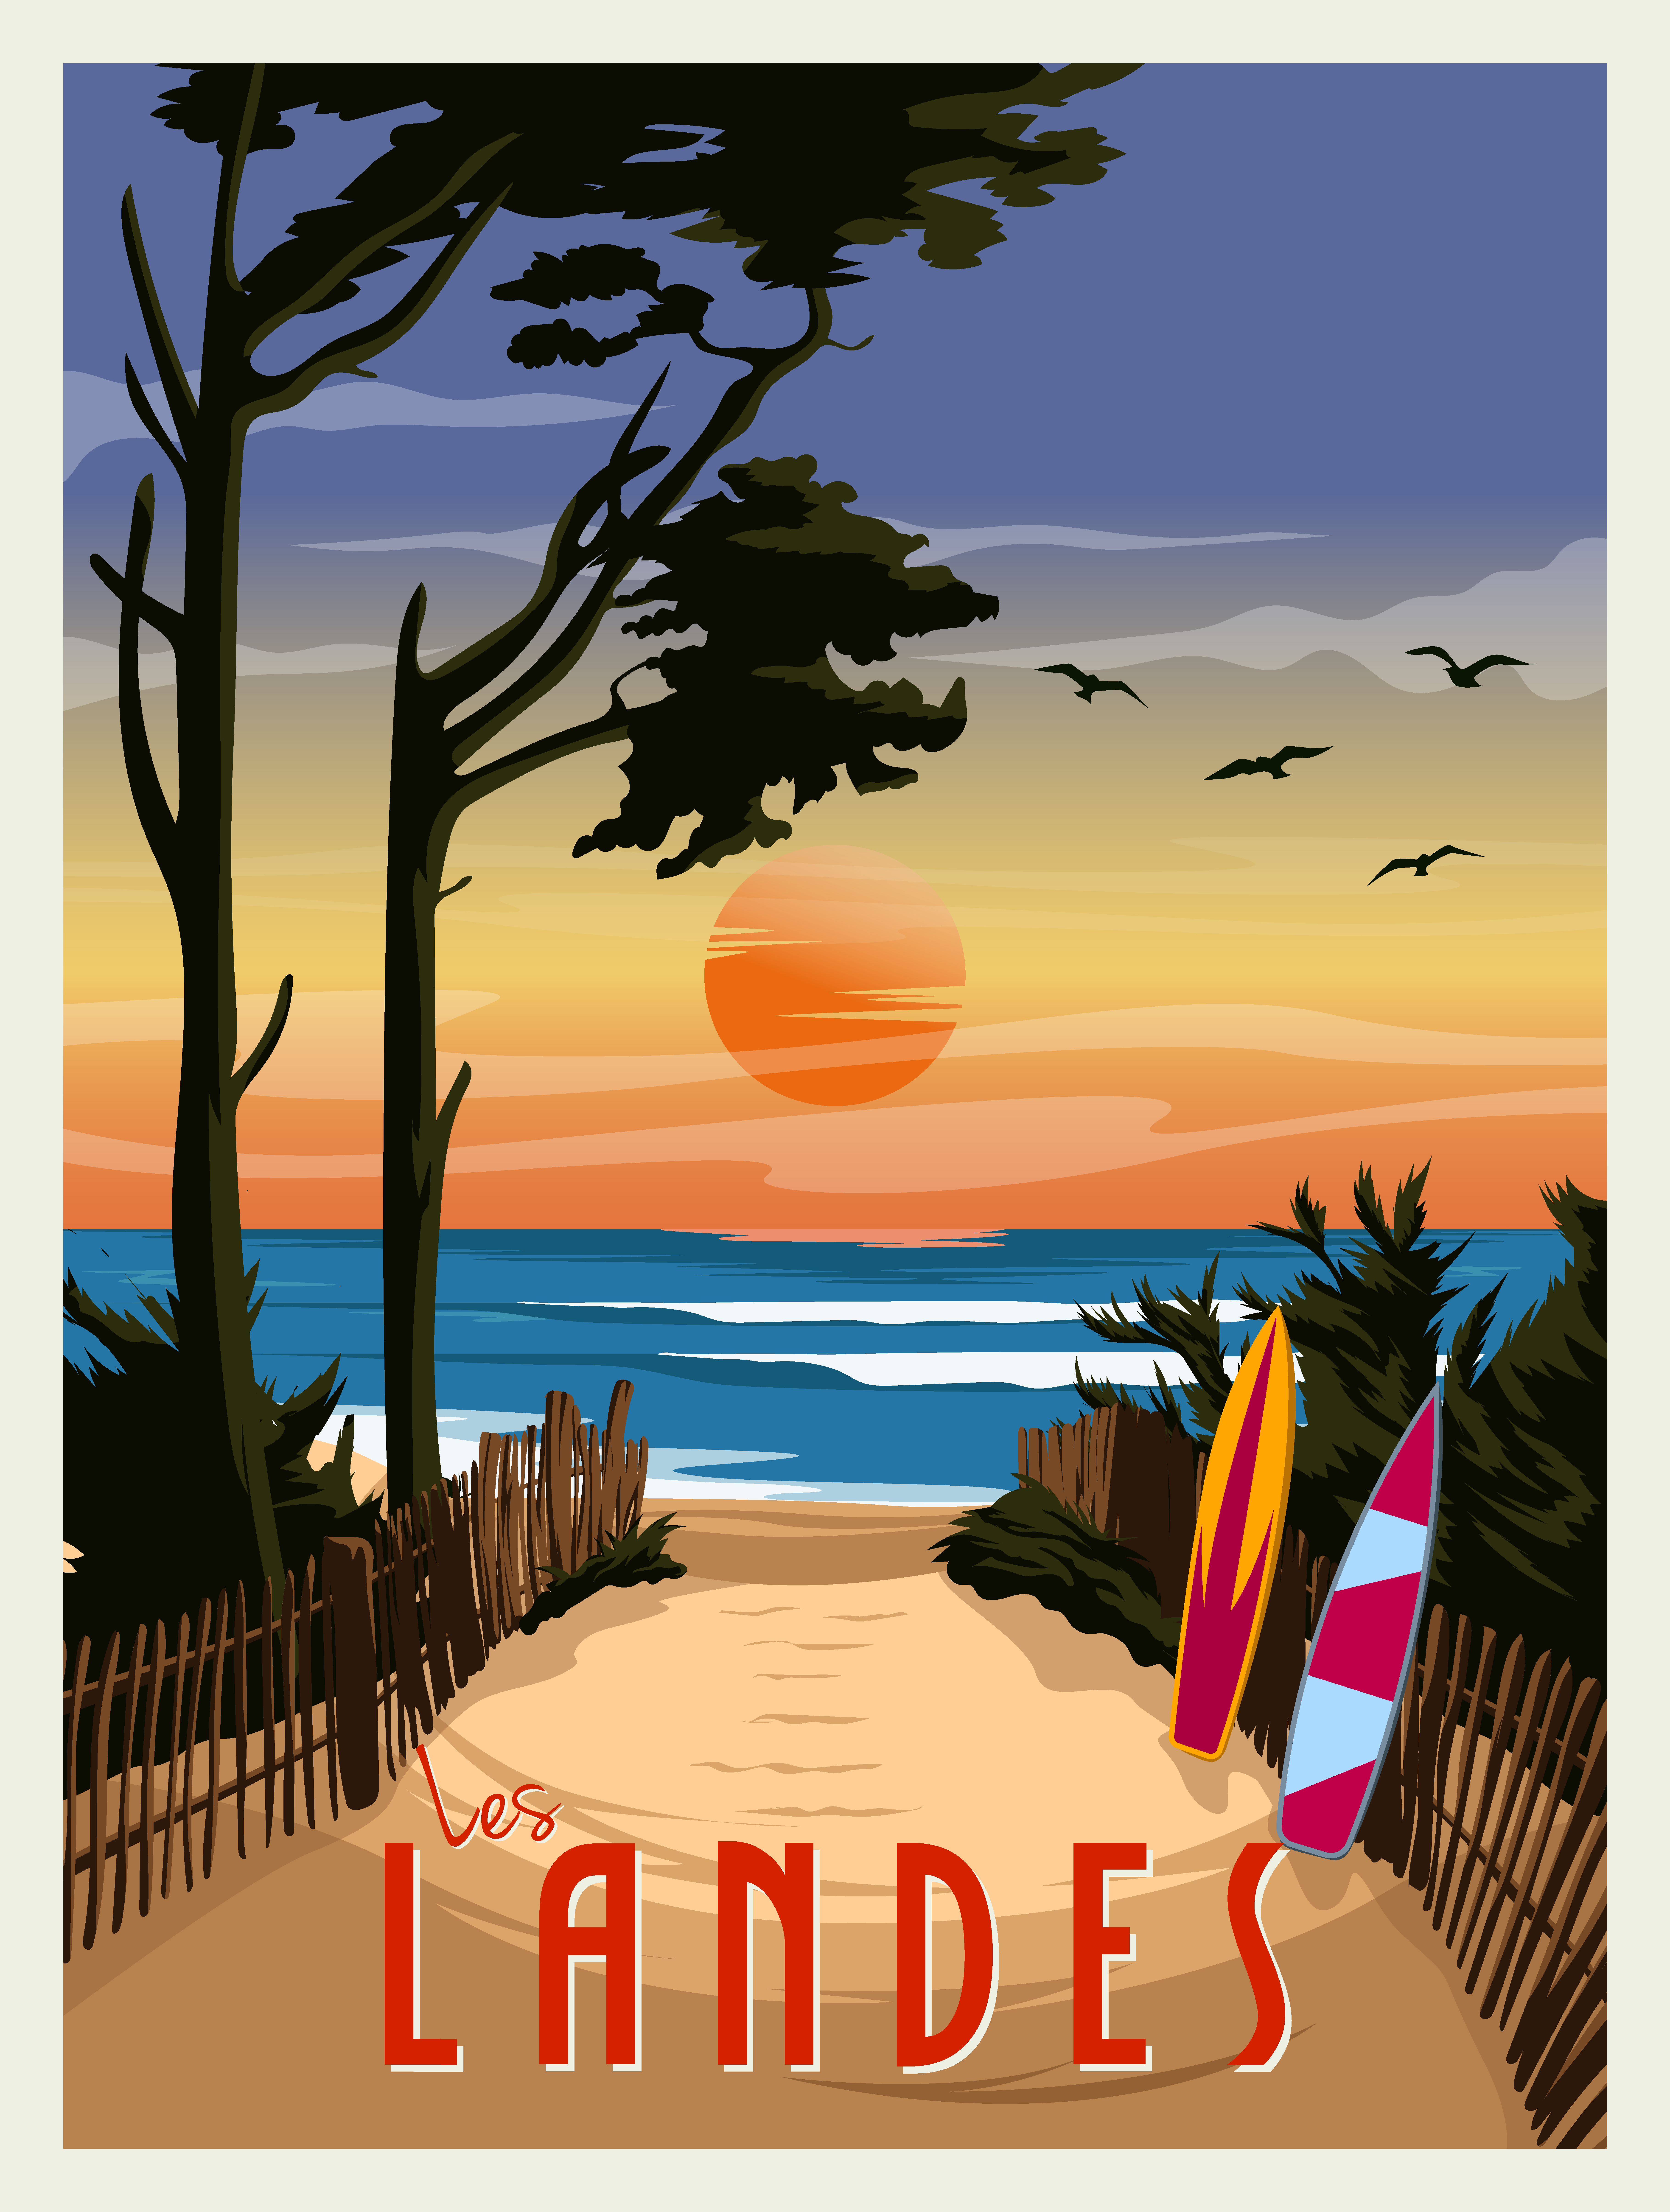 I Will Give You An Amazing Vintage Posters Designs Les Landes Poster Vintage Vintageposter Travelposter Poster Surf Affiches De Voyage Retro Art Du Surf